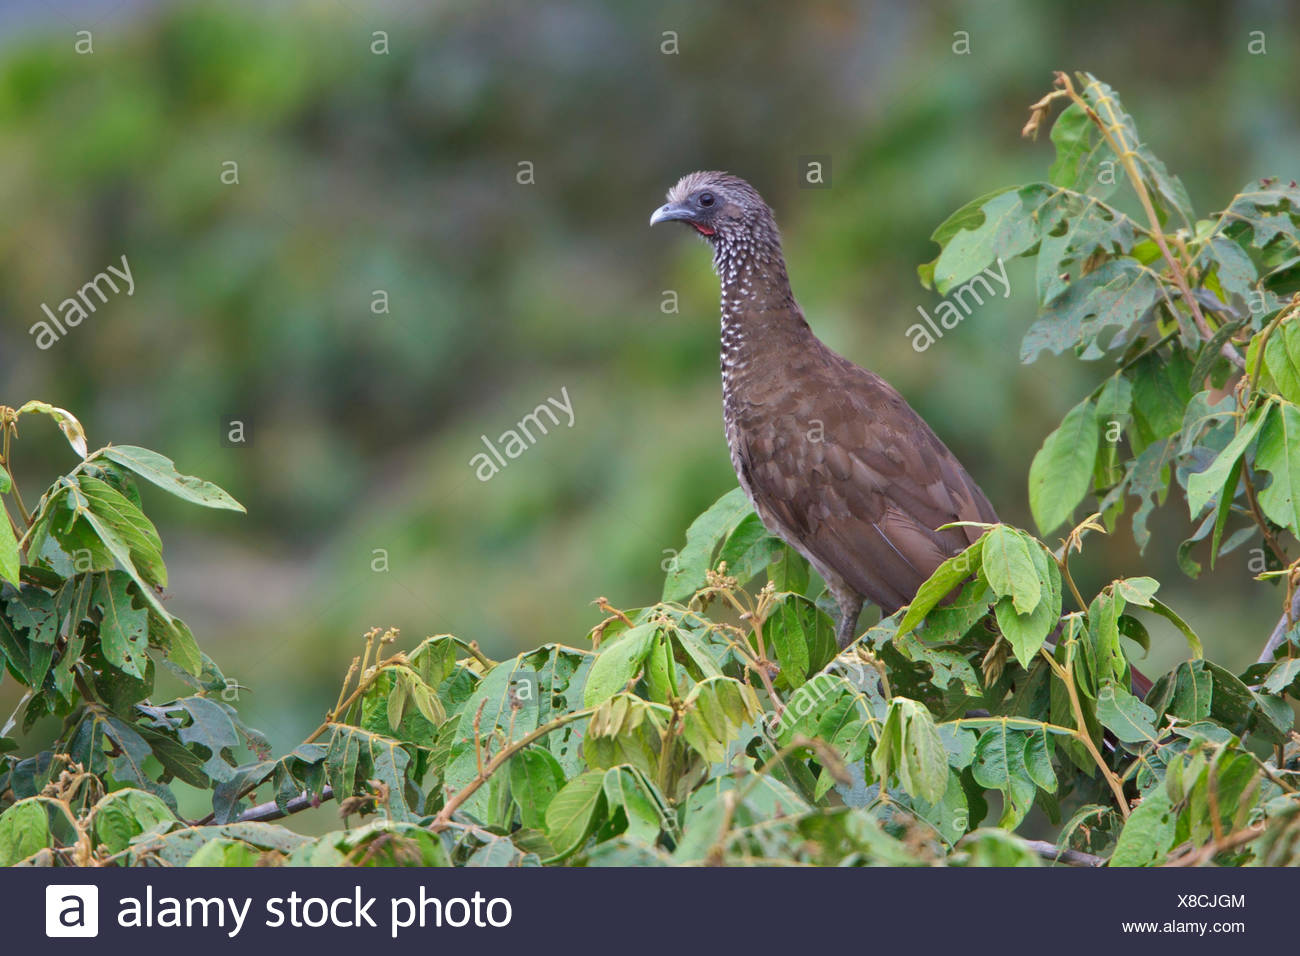 Speckled Chachalaca (Ortalis guttata) perched on a branch in Bolivia, South America. - Stock Image